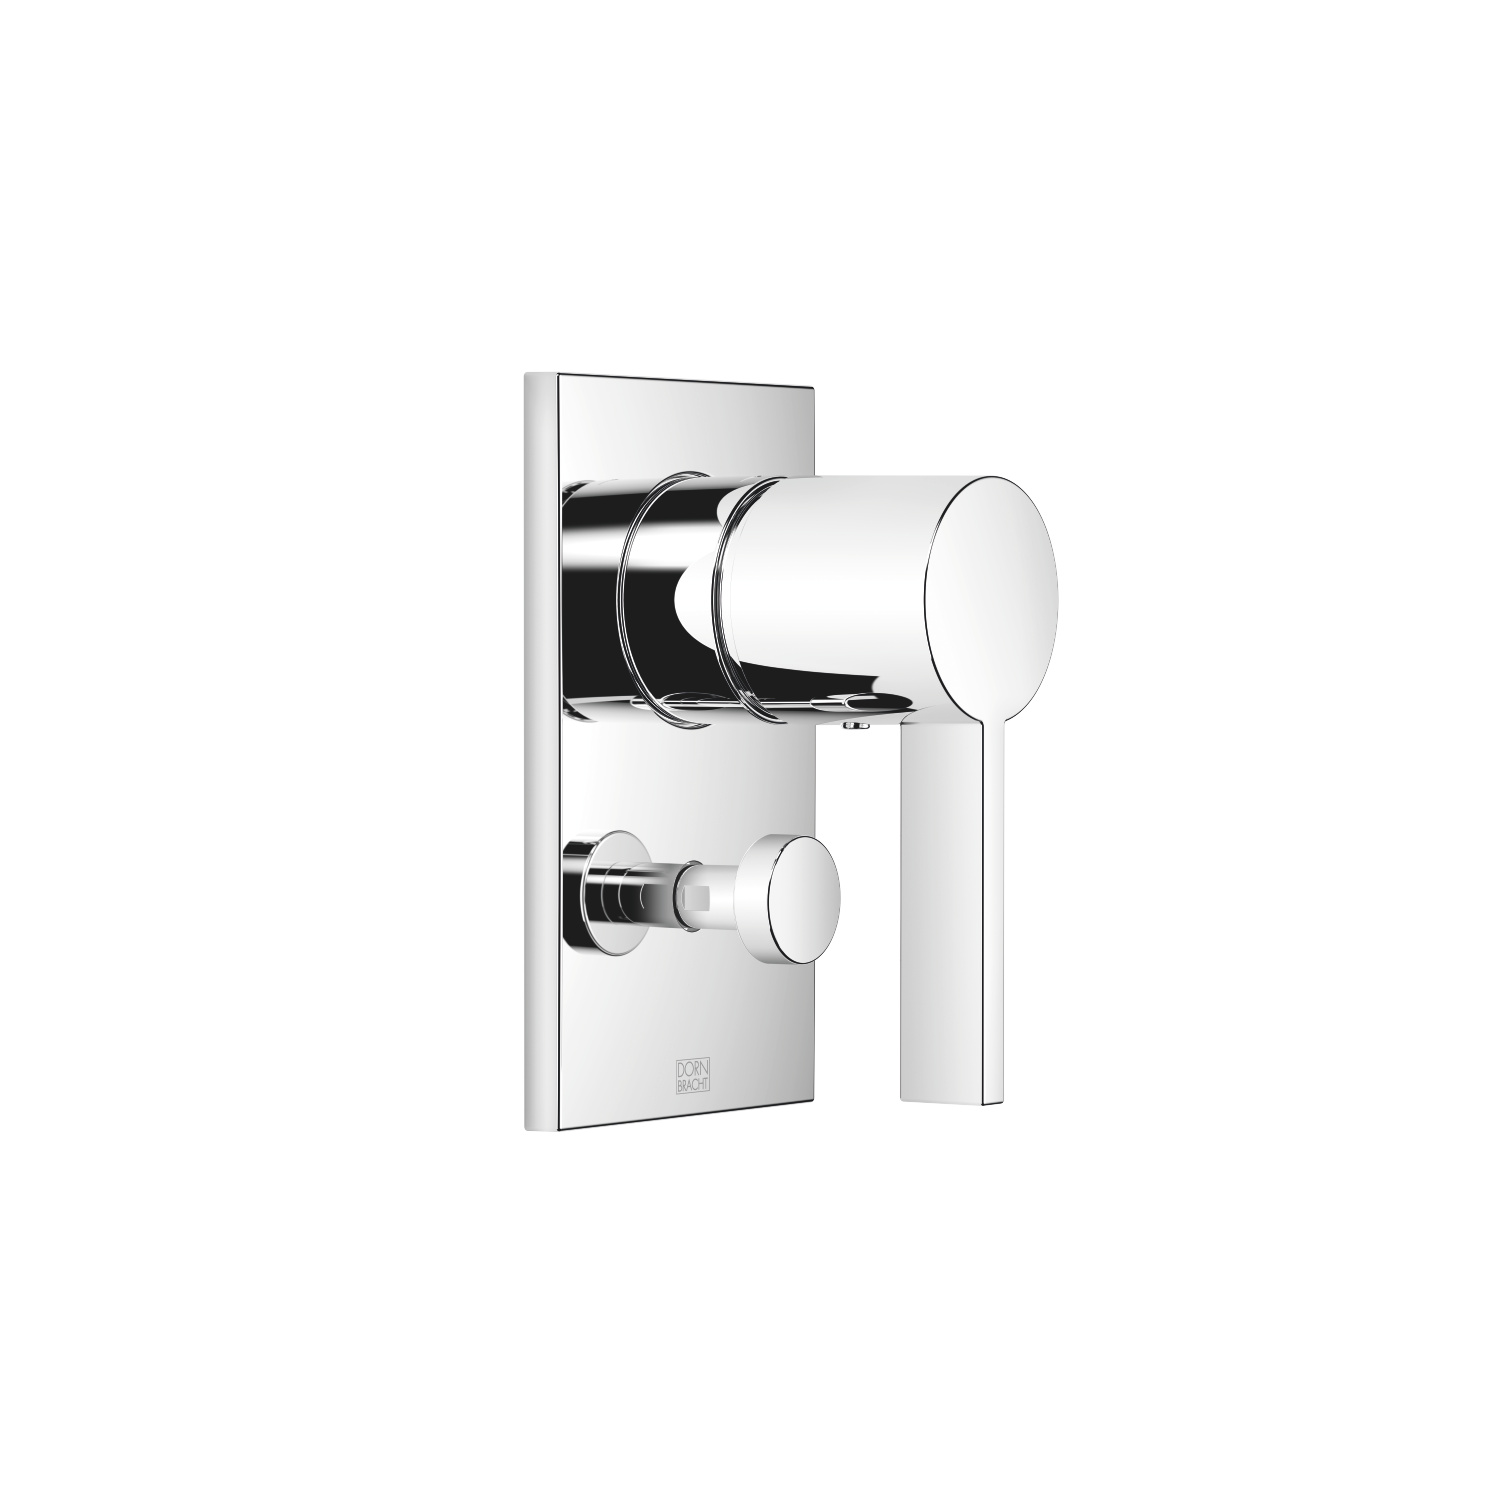 Concealed single-lever mixer with diverter - polished chrome - 36 120 670-00